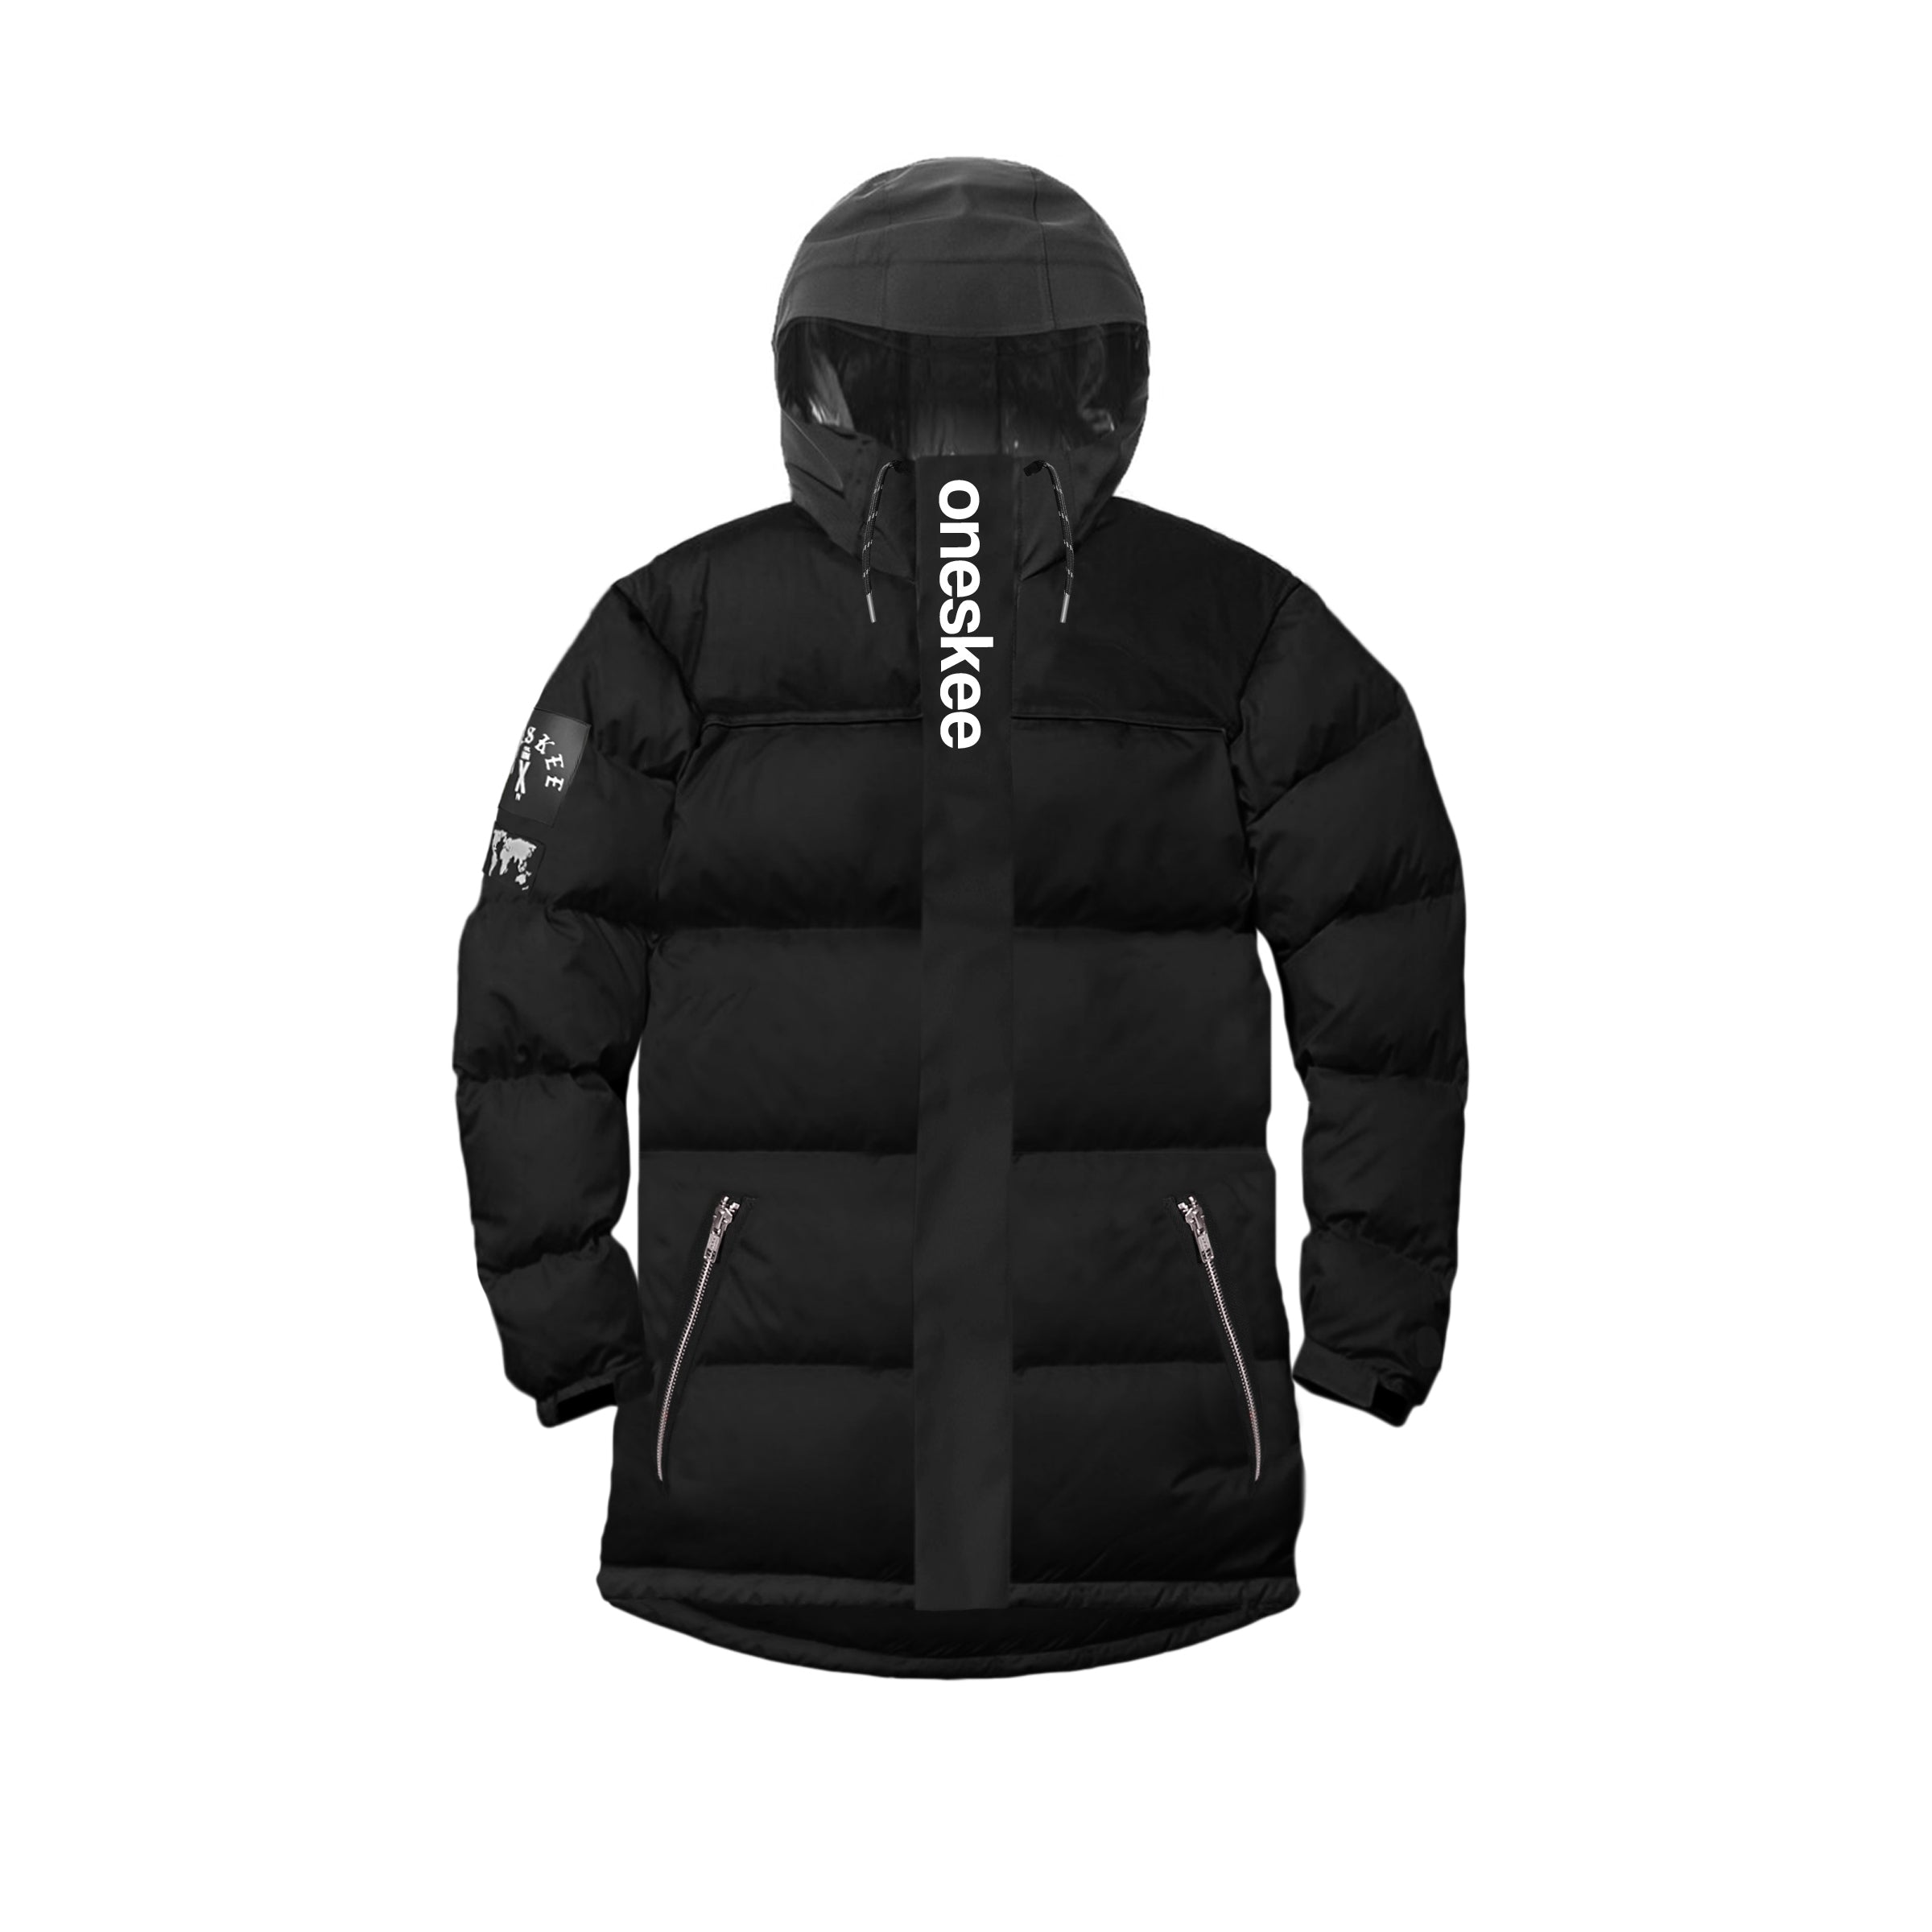 Puffer Jacket - Black image 7